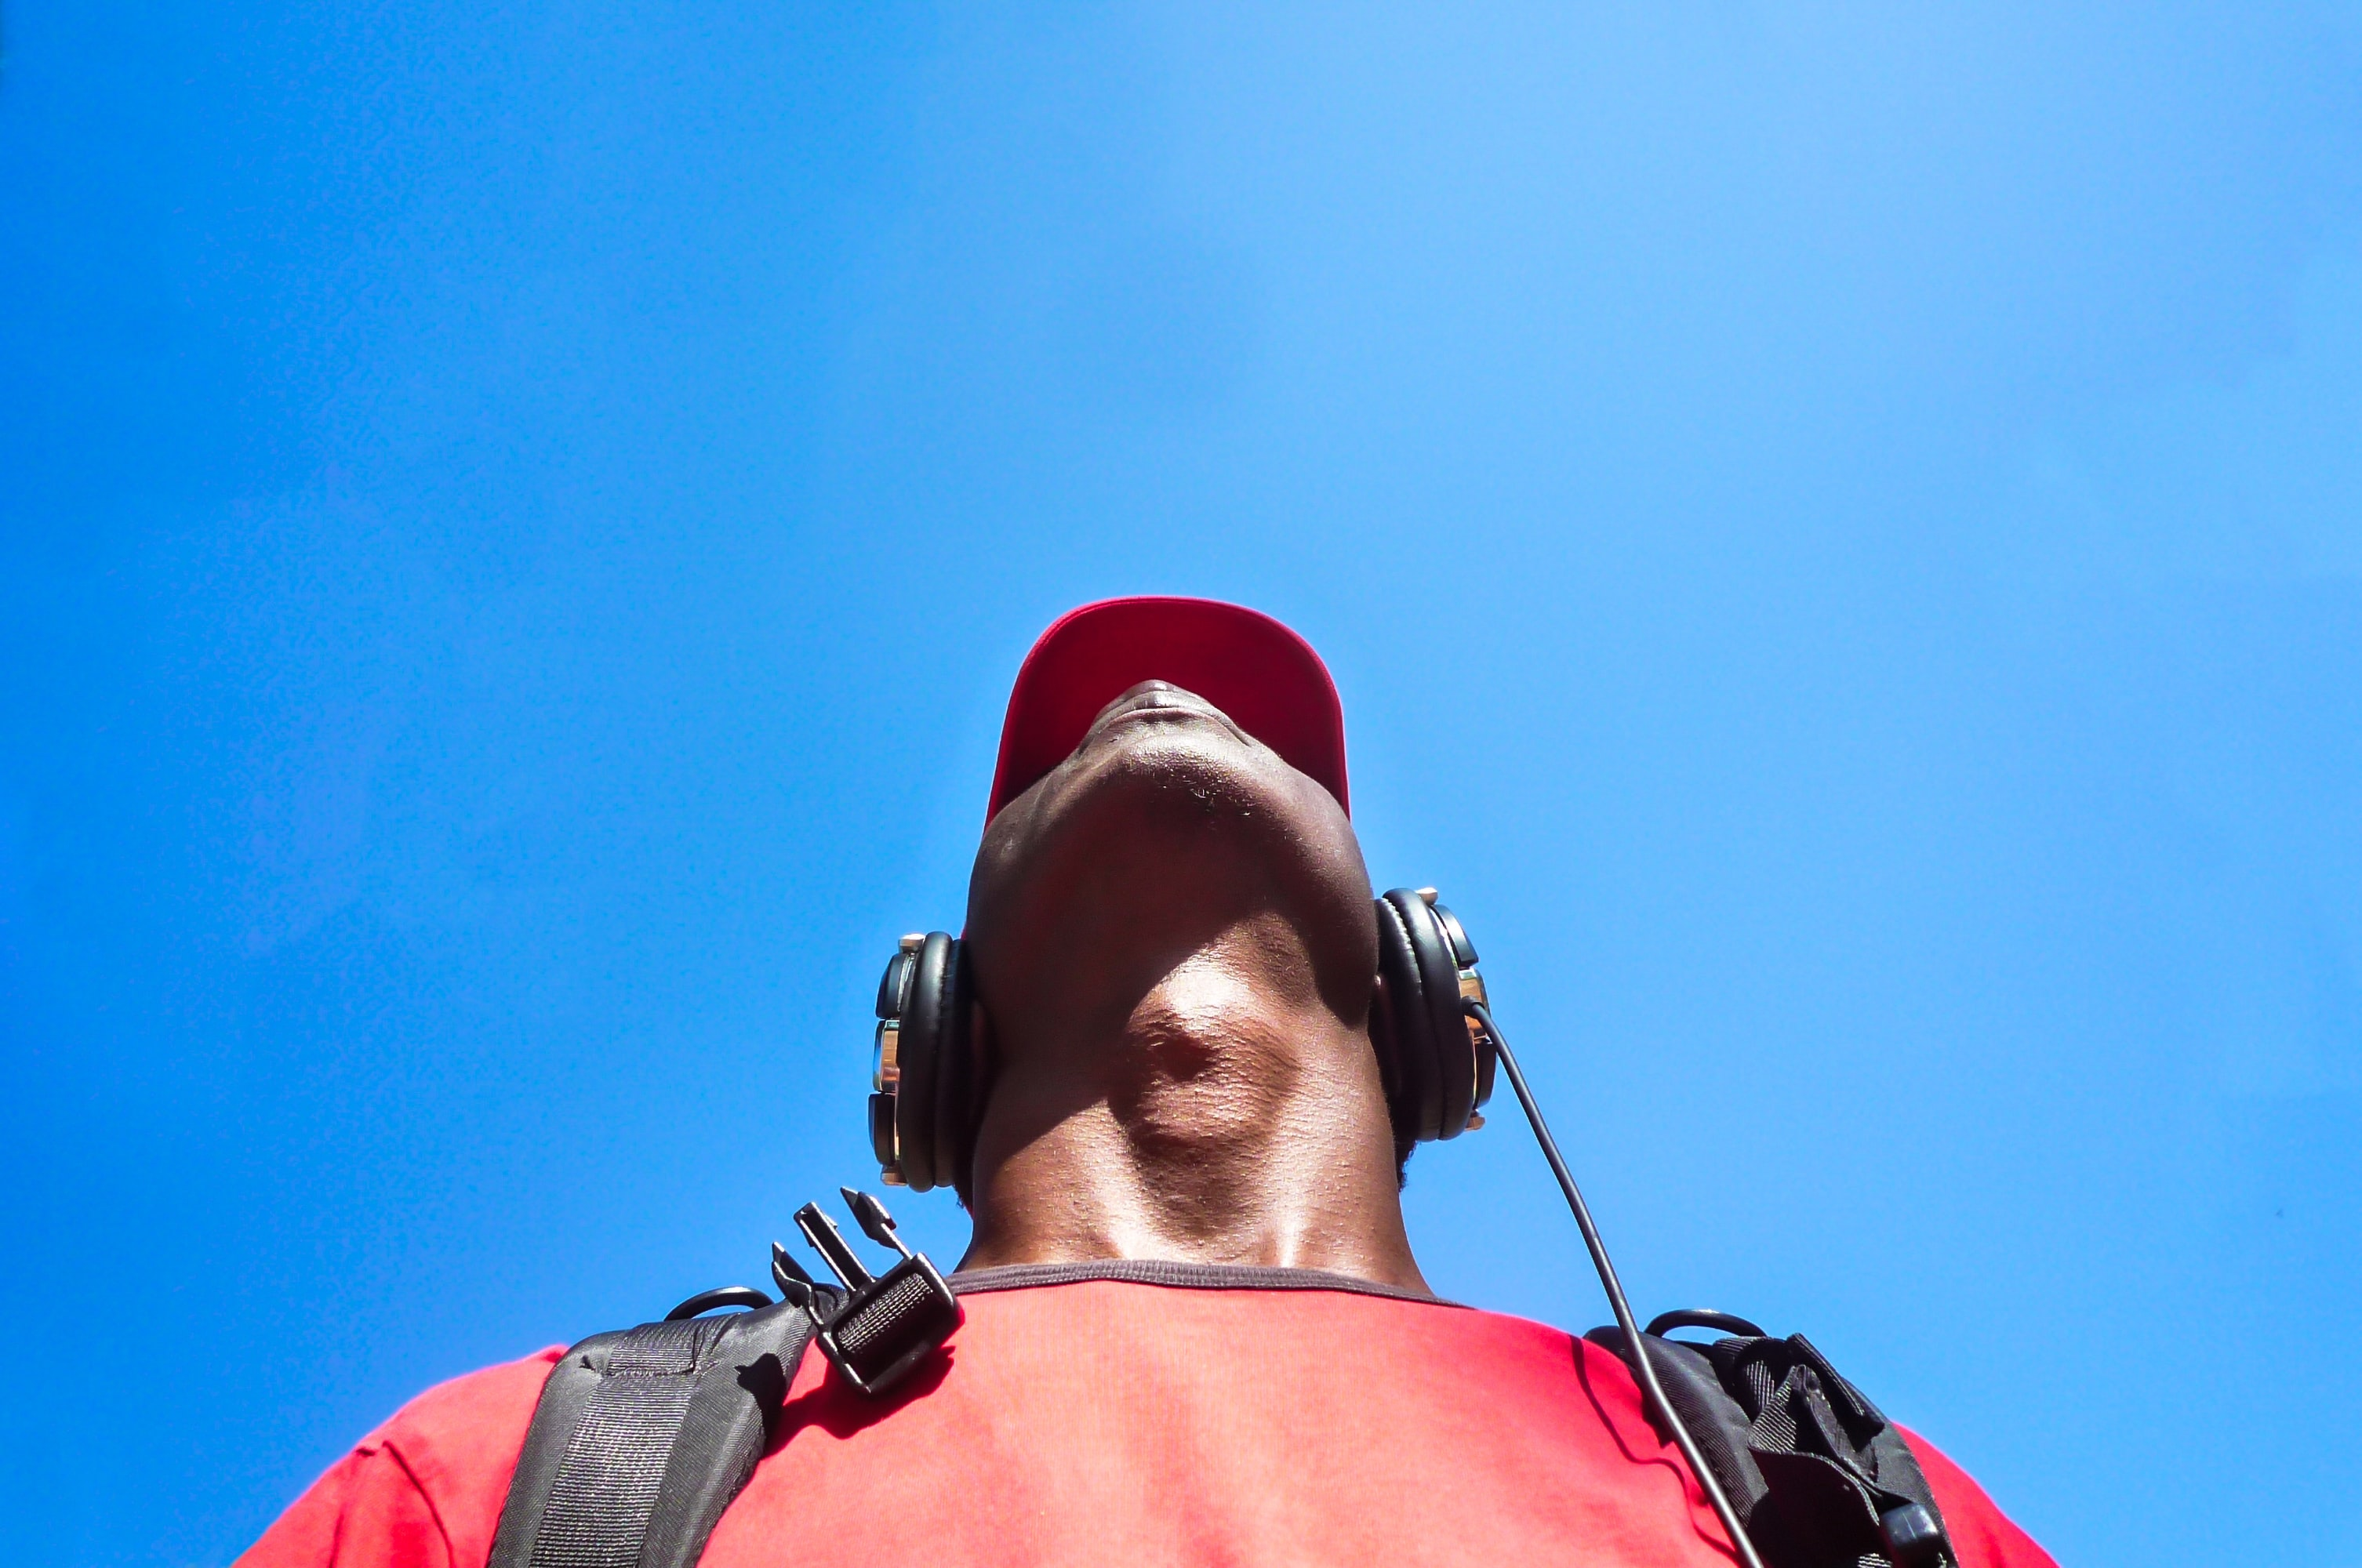 man looking up while wearing black headphones